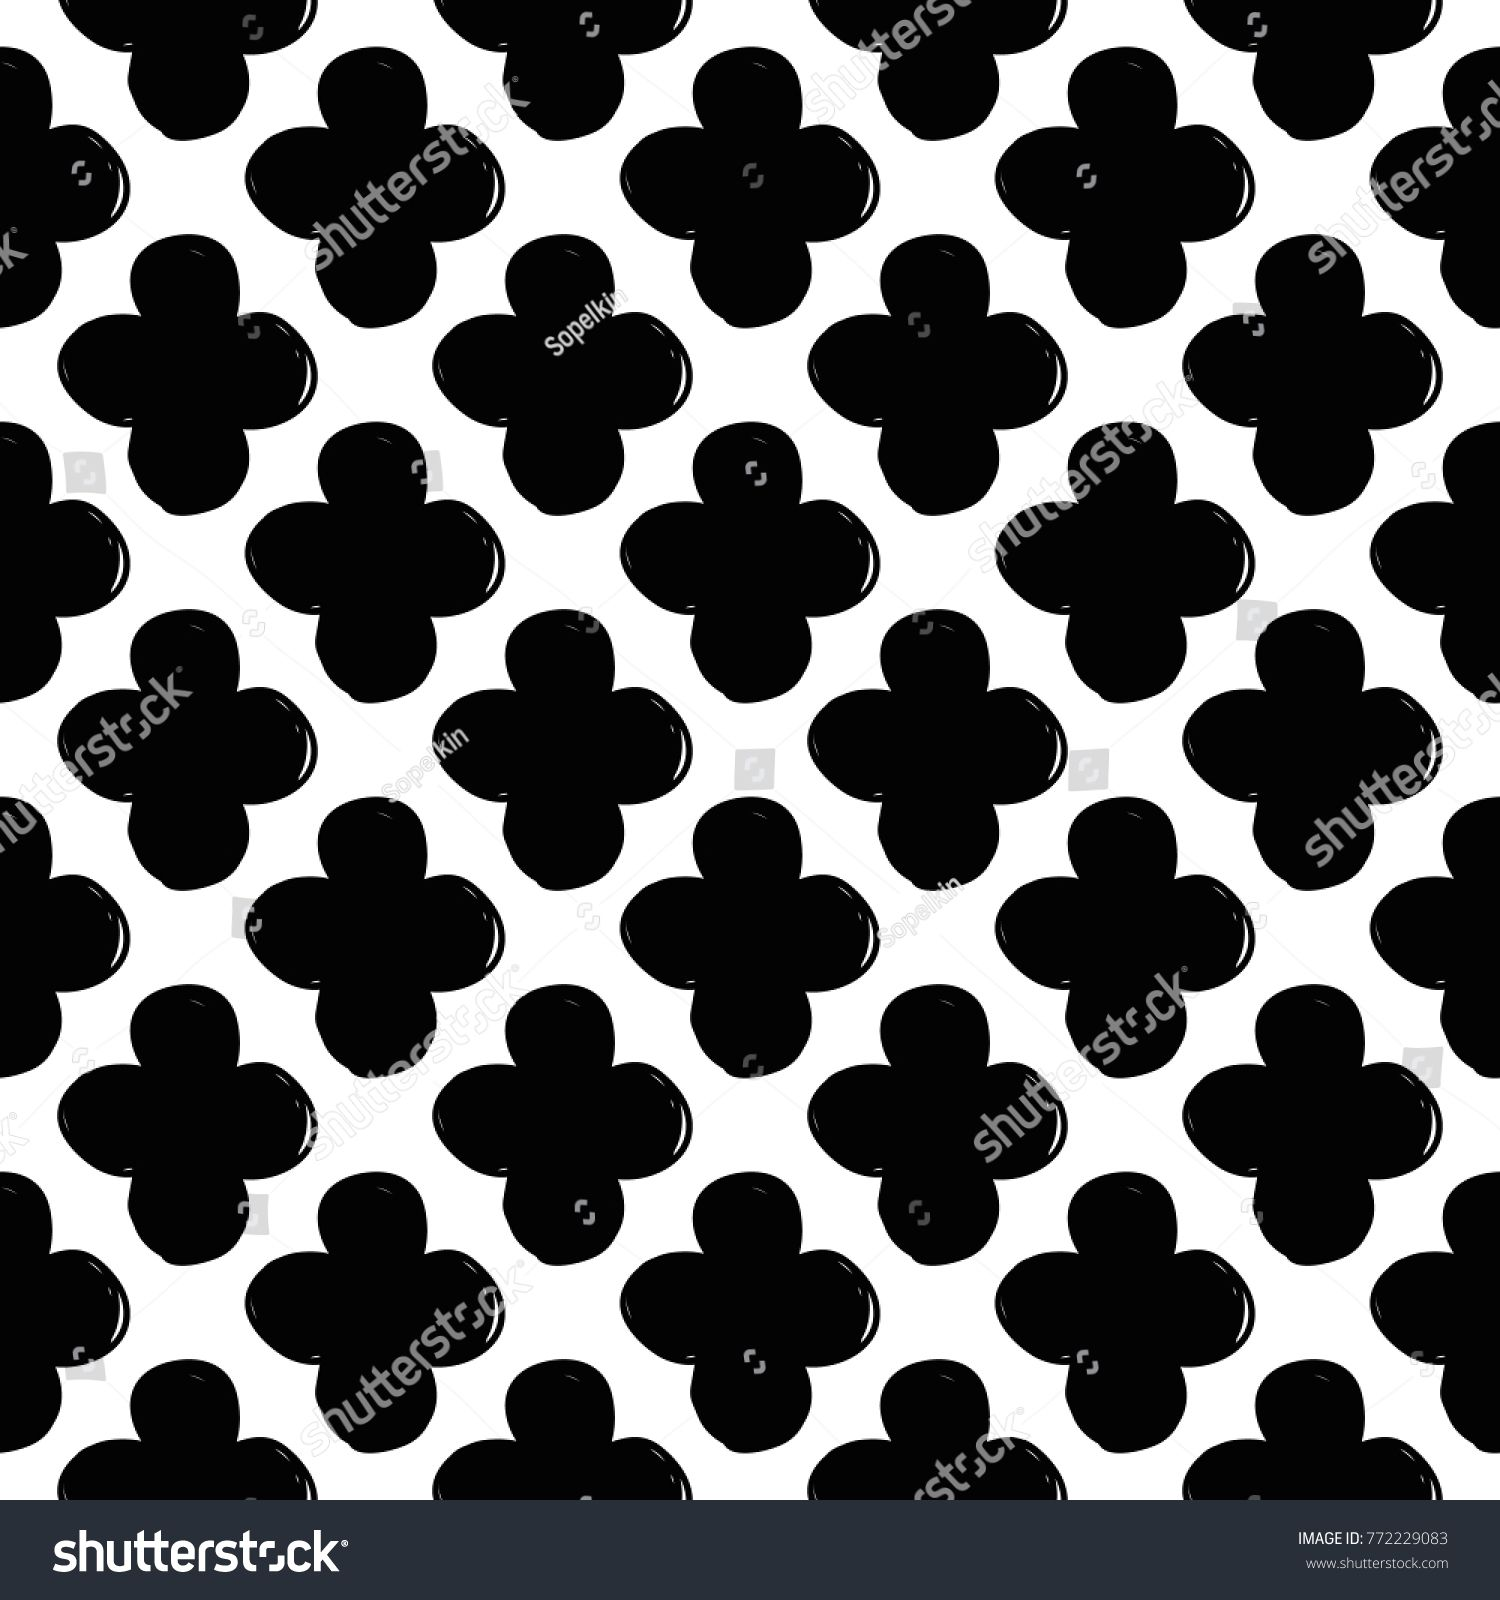 Modern Kids B W Seamless Pattern With Clover Hand Drawn Graphic Black And White Cute Minimalistic Scandinavia Cute Little Girls Photoshop Photos Photo Effects